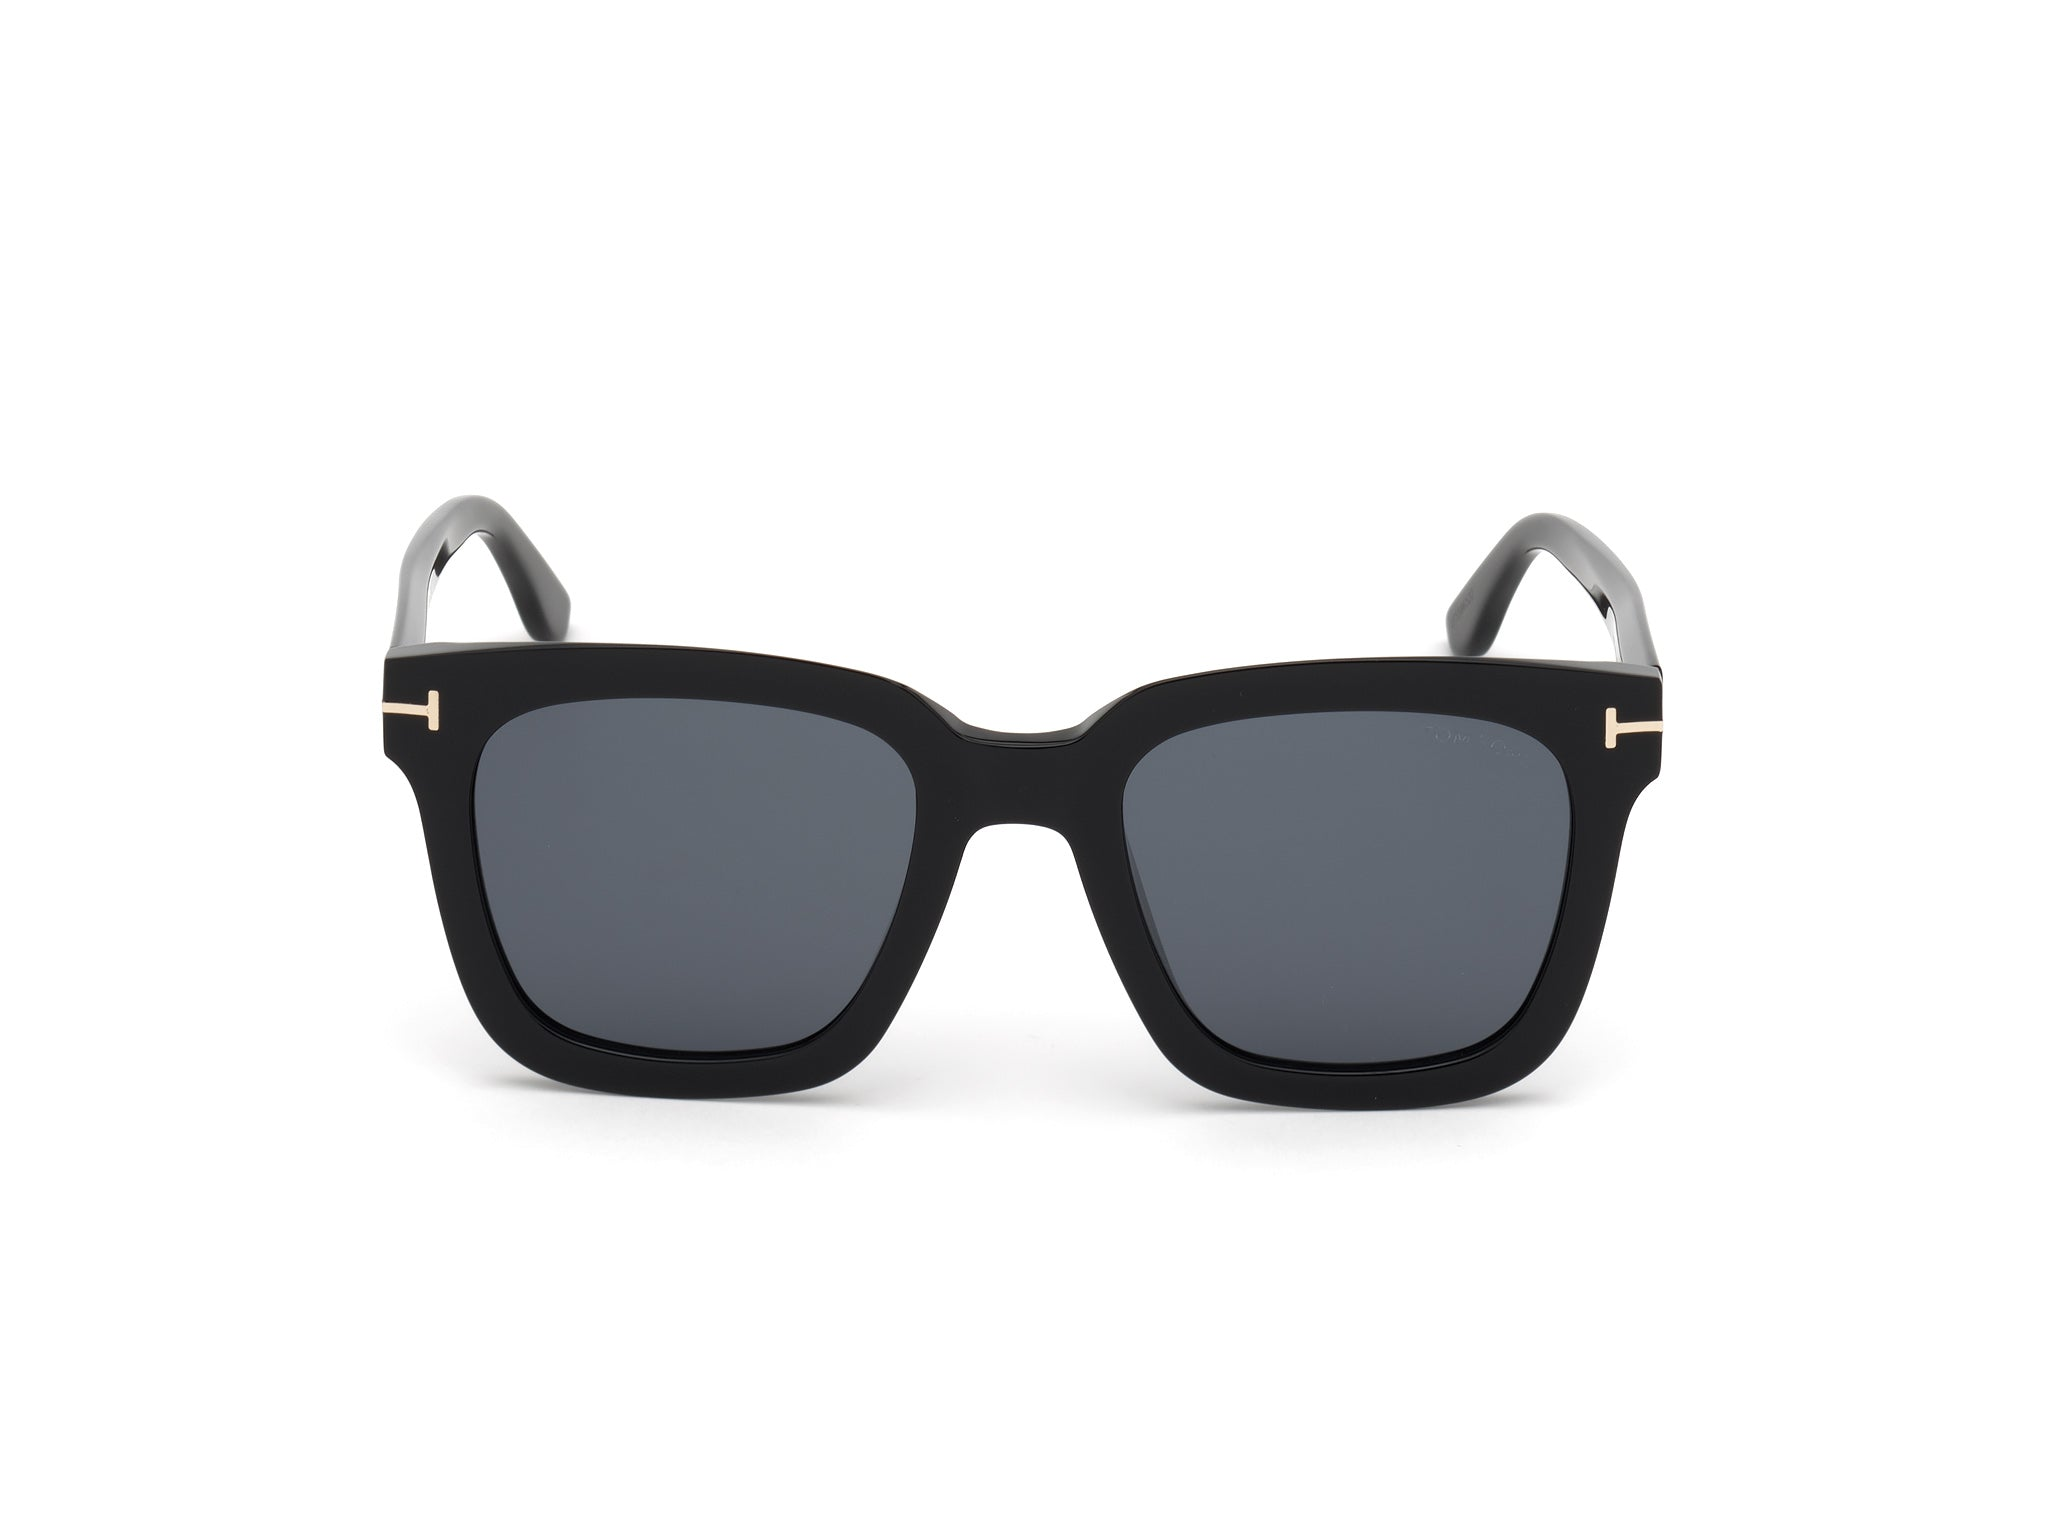 Tom Ford 803 Black/ Smoke